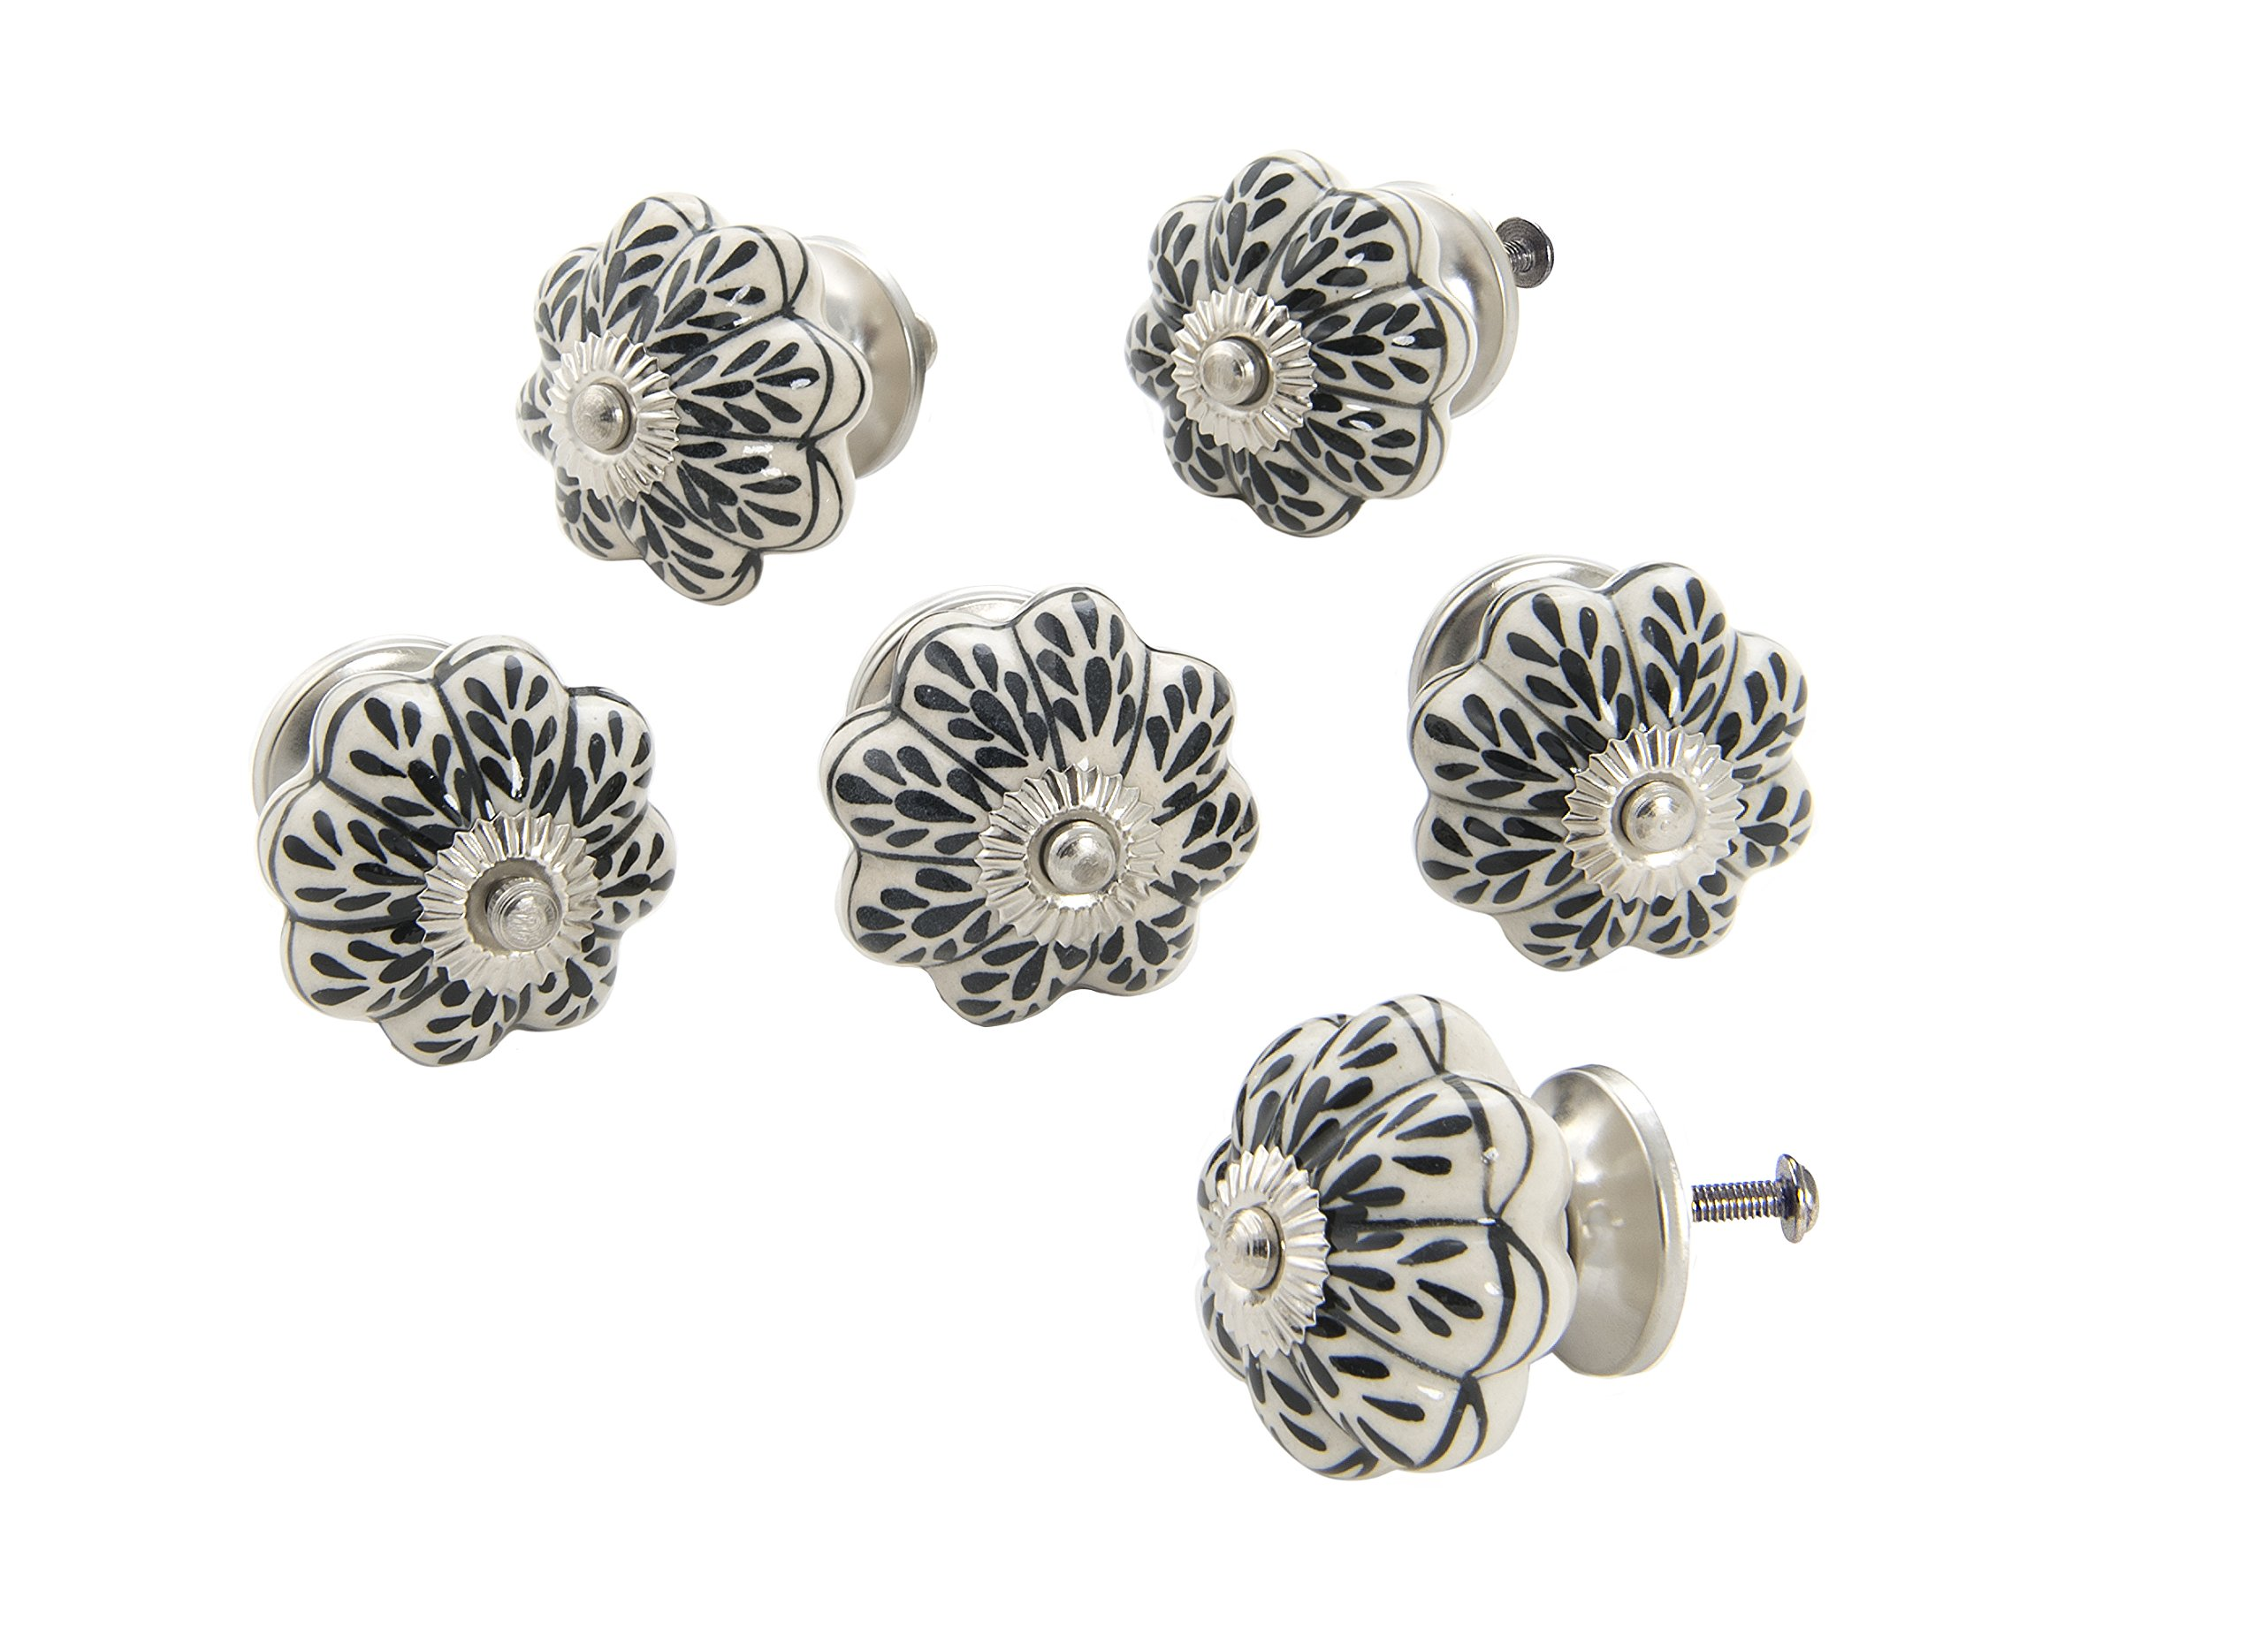 Dritz Home 47070A Ceramic Hand Painted Scallop Knob Handcrafted Knobs for Cabinets & Drawers